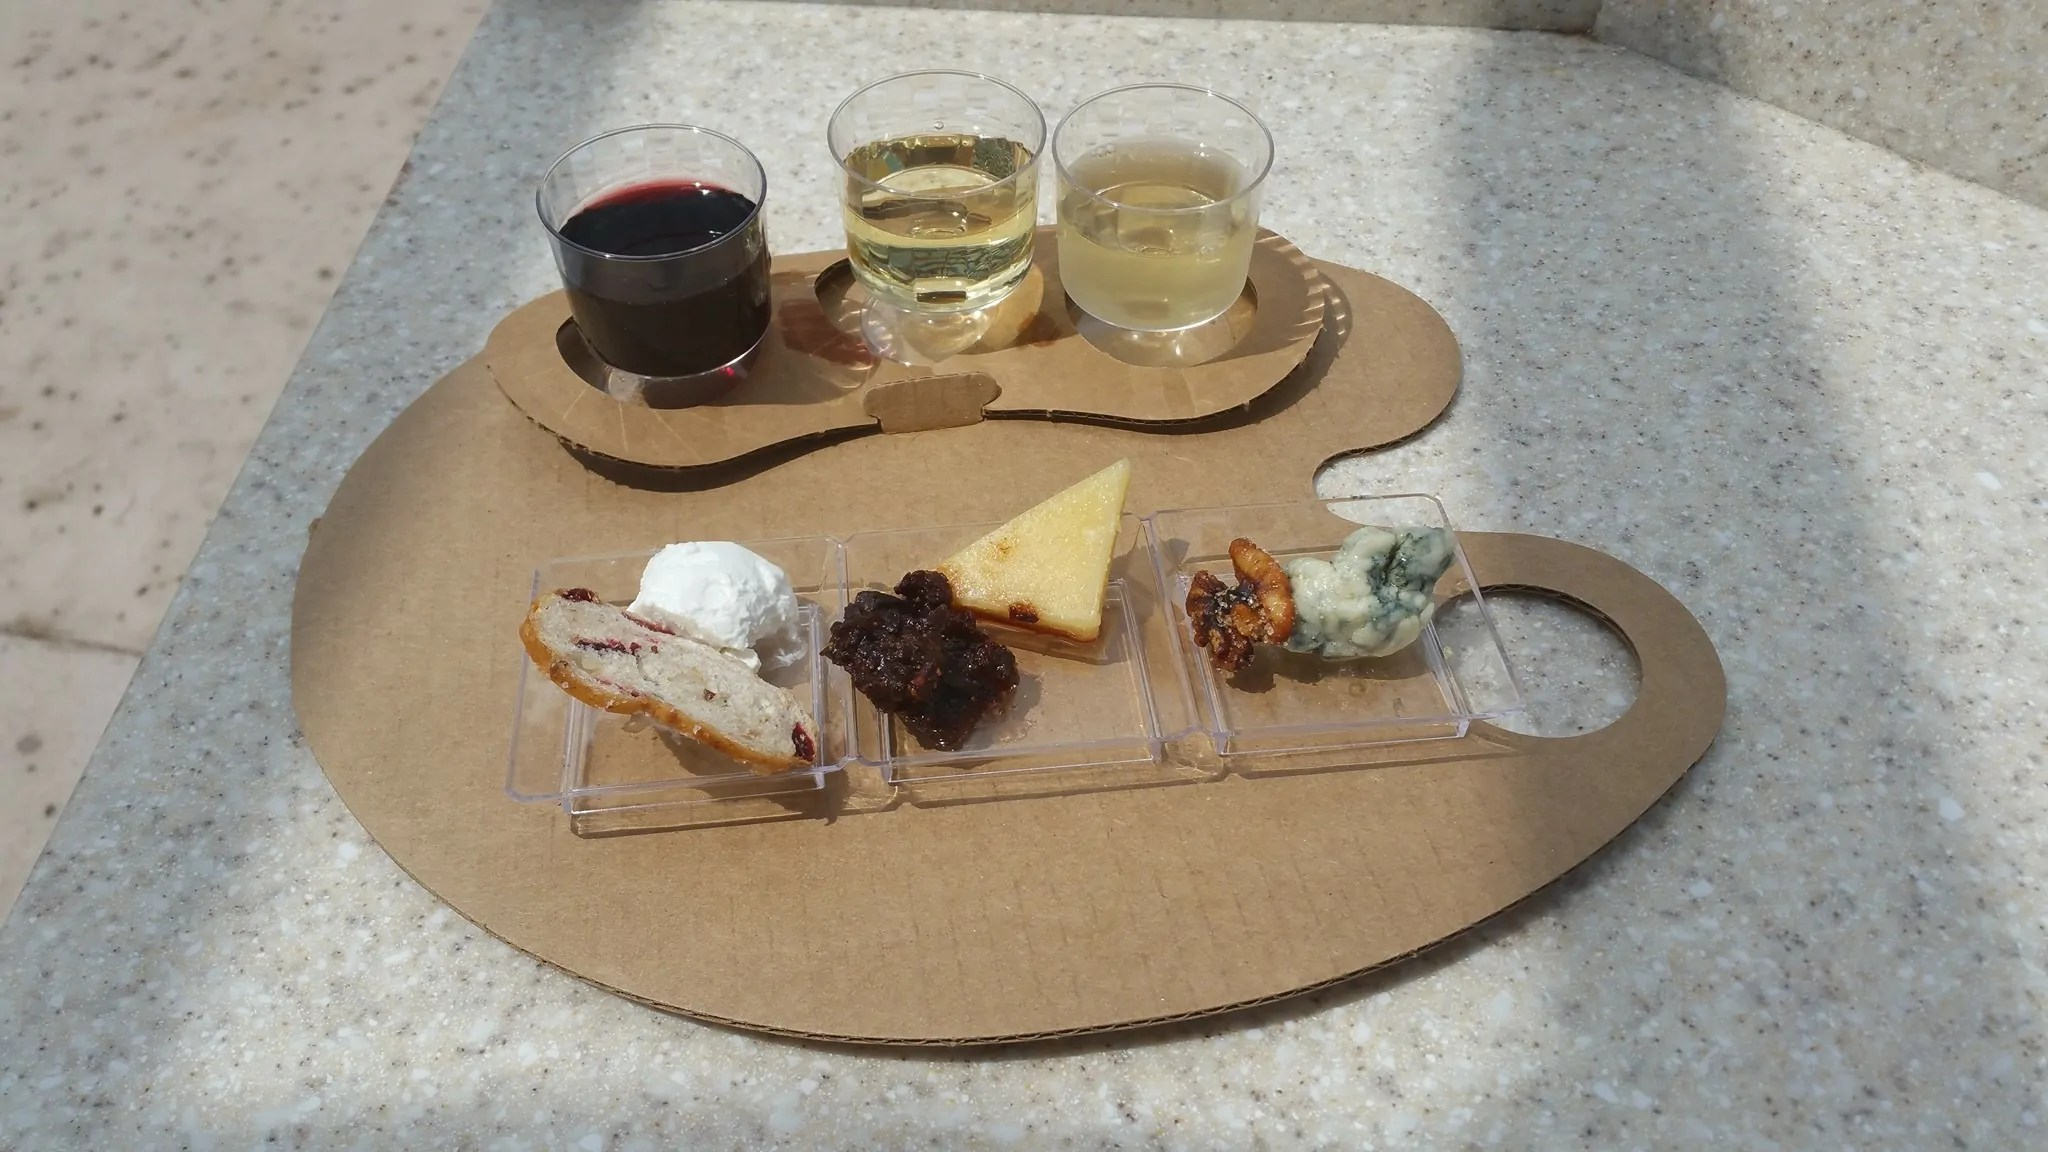 Artist Palette of Wine and Cheese, Photo Credit Capturing Magical Memories